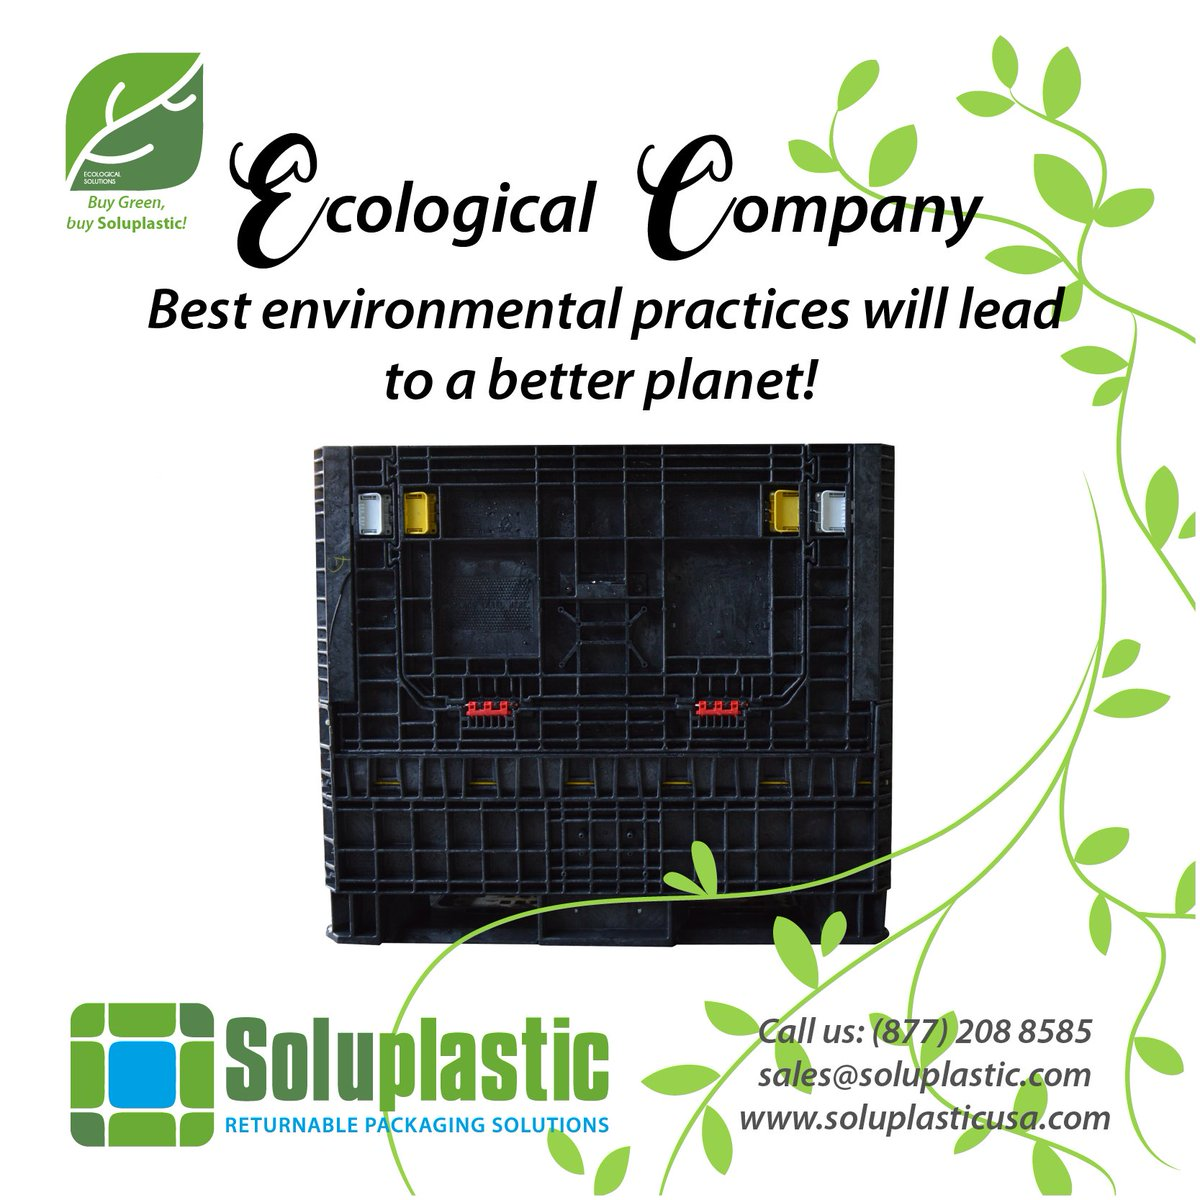 We care about the #environment! #GreenCompany #EcologicalCompany Phone: (877) 208 8585 sales@soluplastic.com  http://www. soluplasticusa.com  &nbsp;  <br>http://pic.twitter.com/gLea7gsKLo